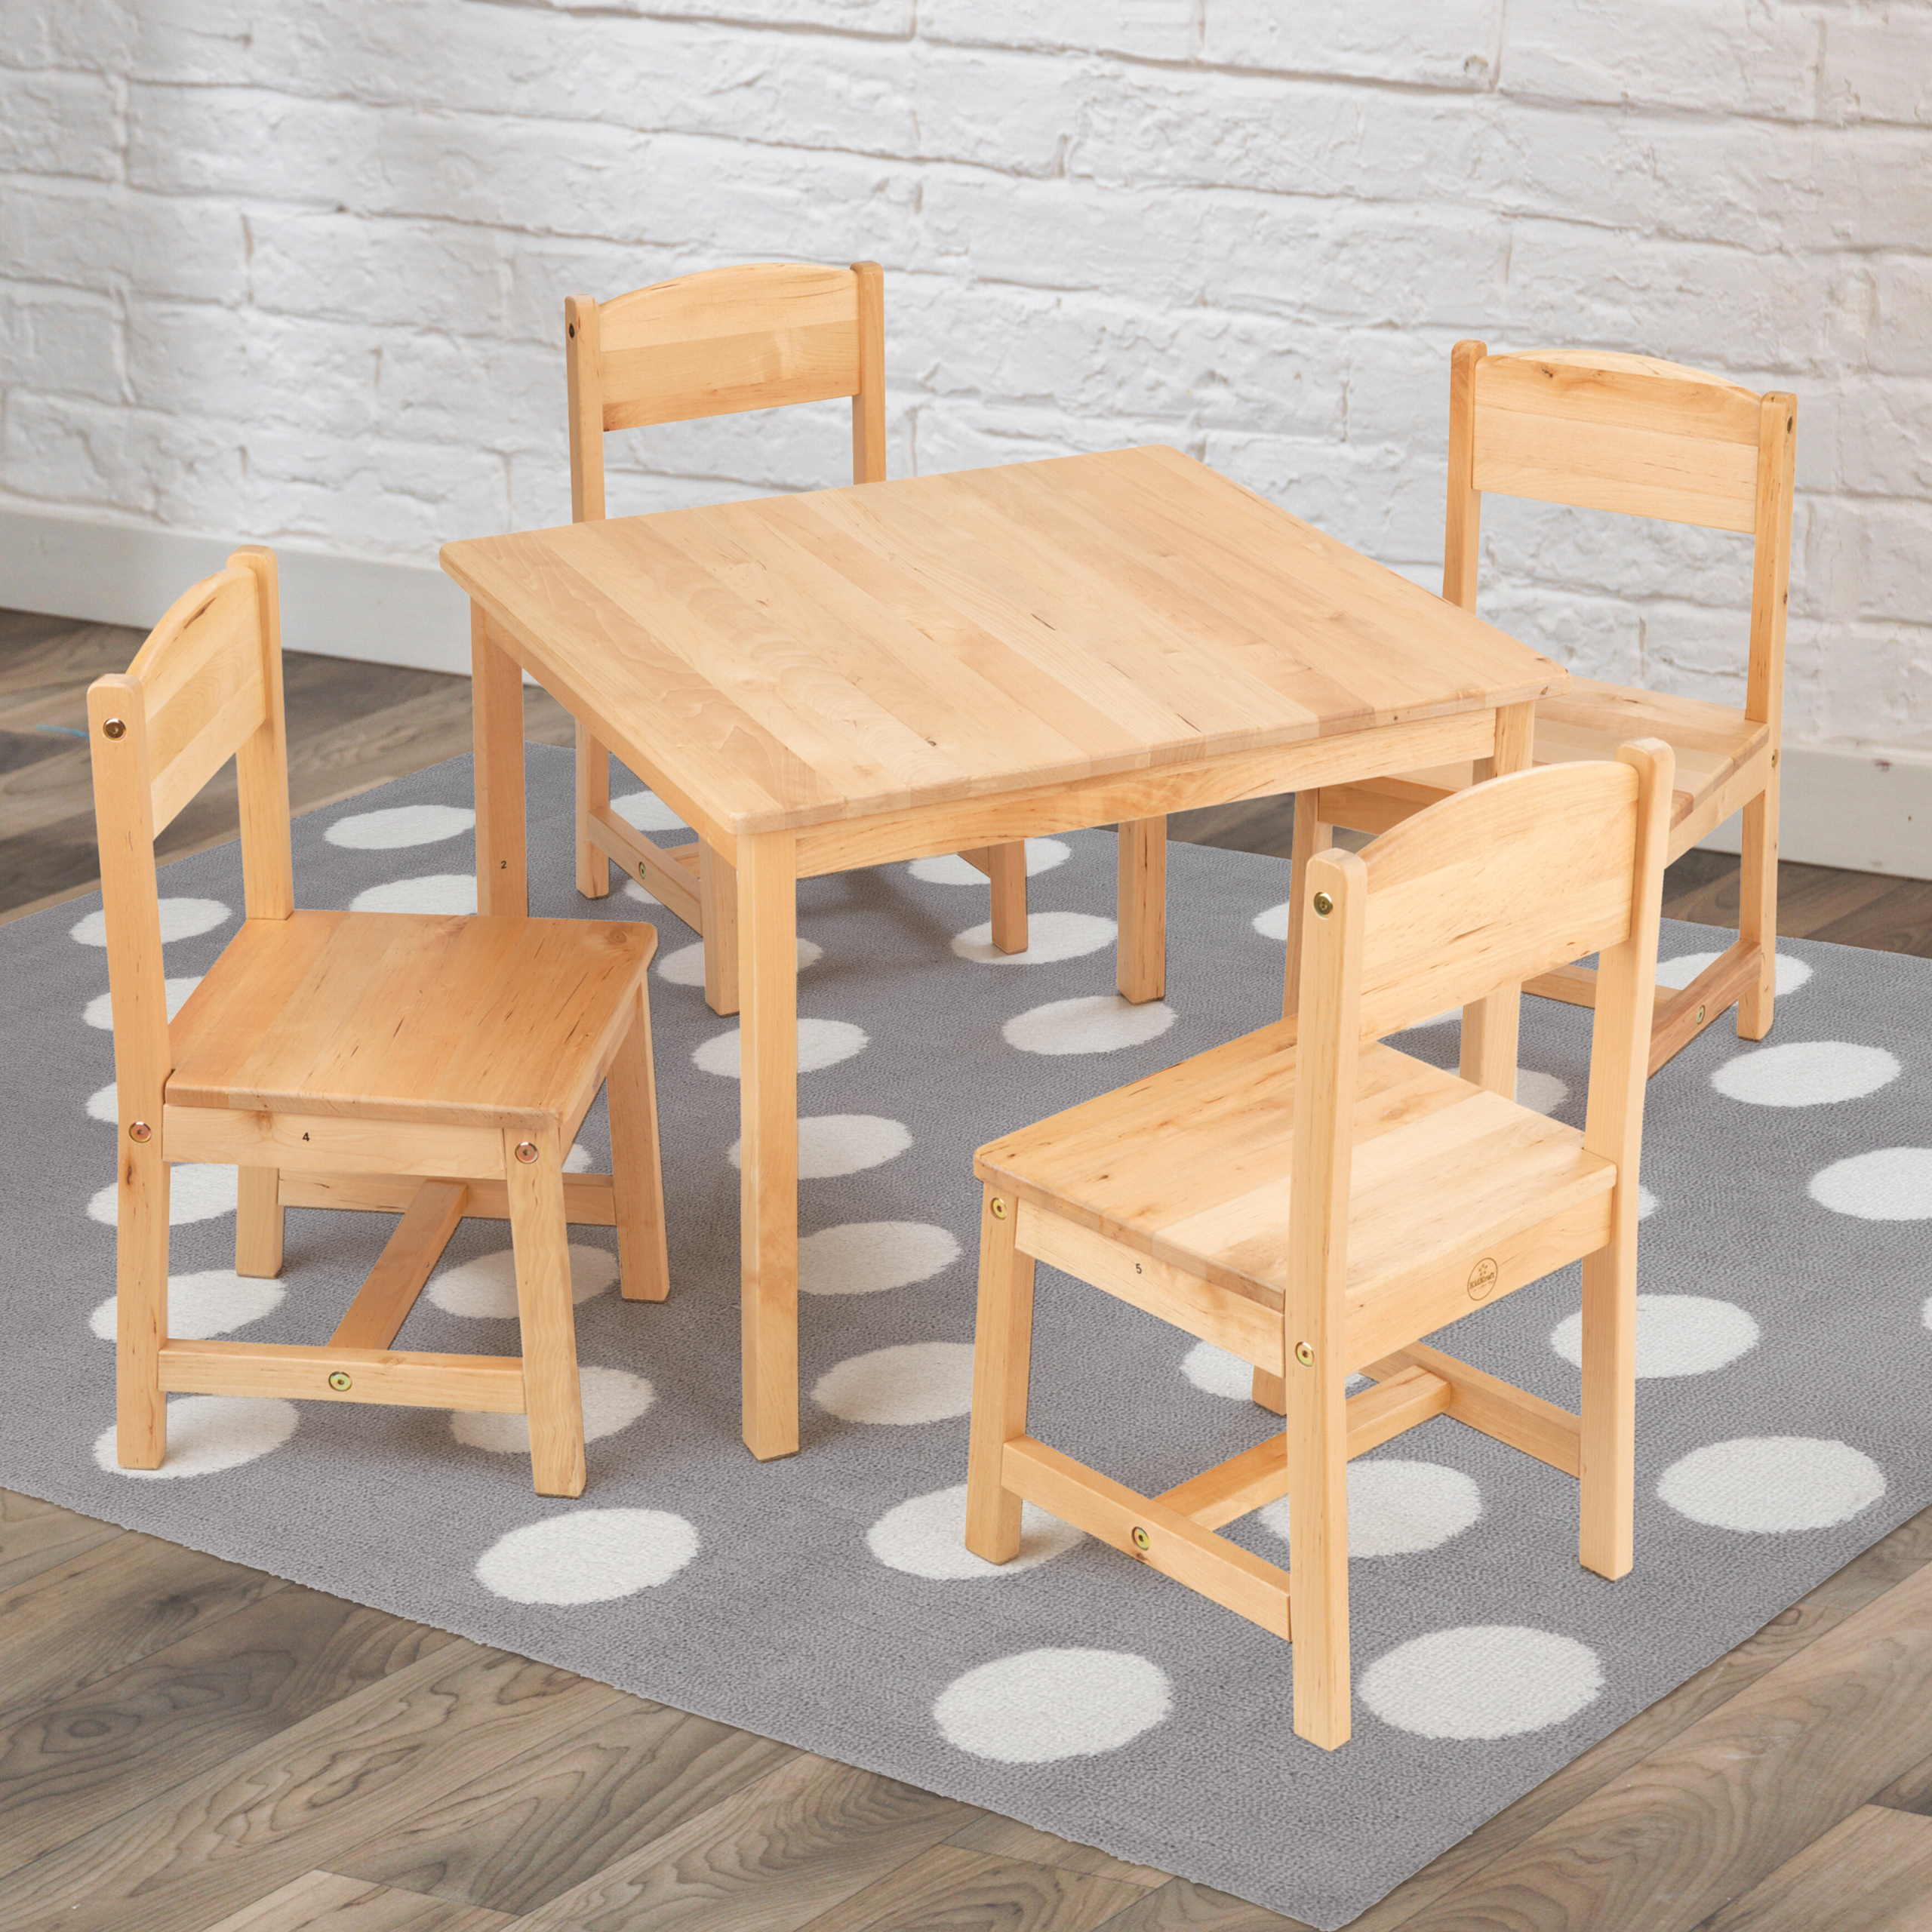 Plywood Furniture Montessori Table And Chairs Visual Hunt